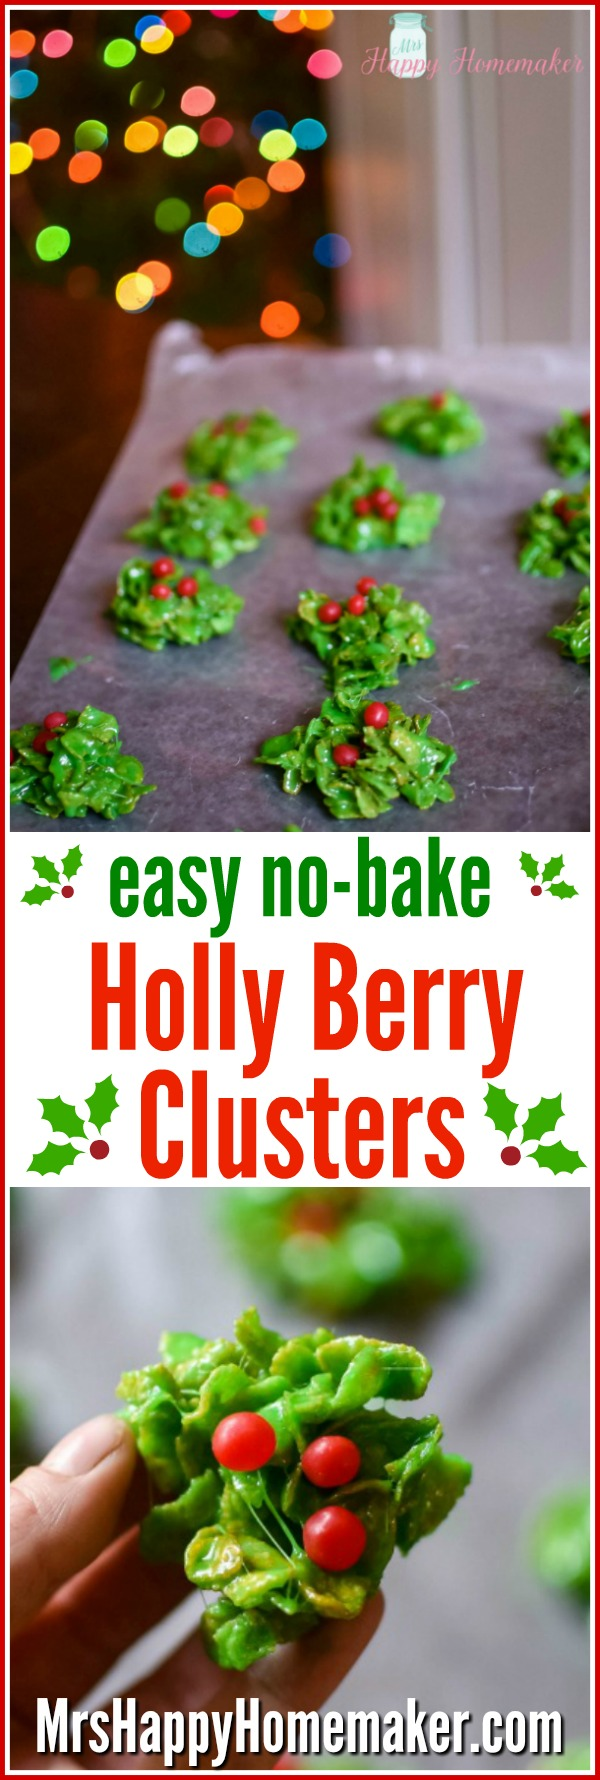 Looking for an easy Christmas cookie to make? These Holly Berry Clusters are no-bake, only 5 ingredients, & so easy that even the littlest of kids can help make them!